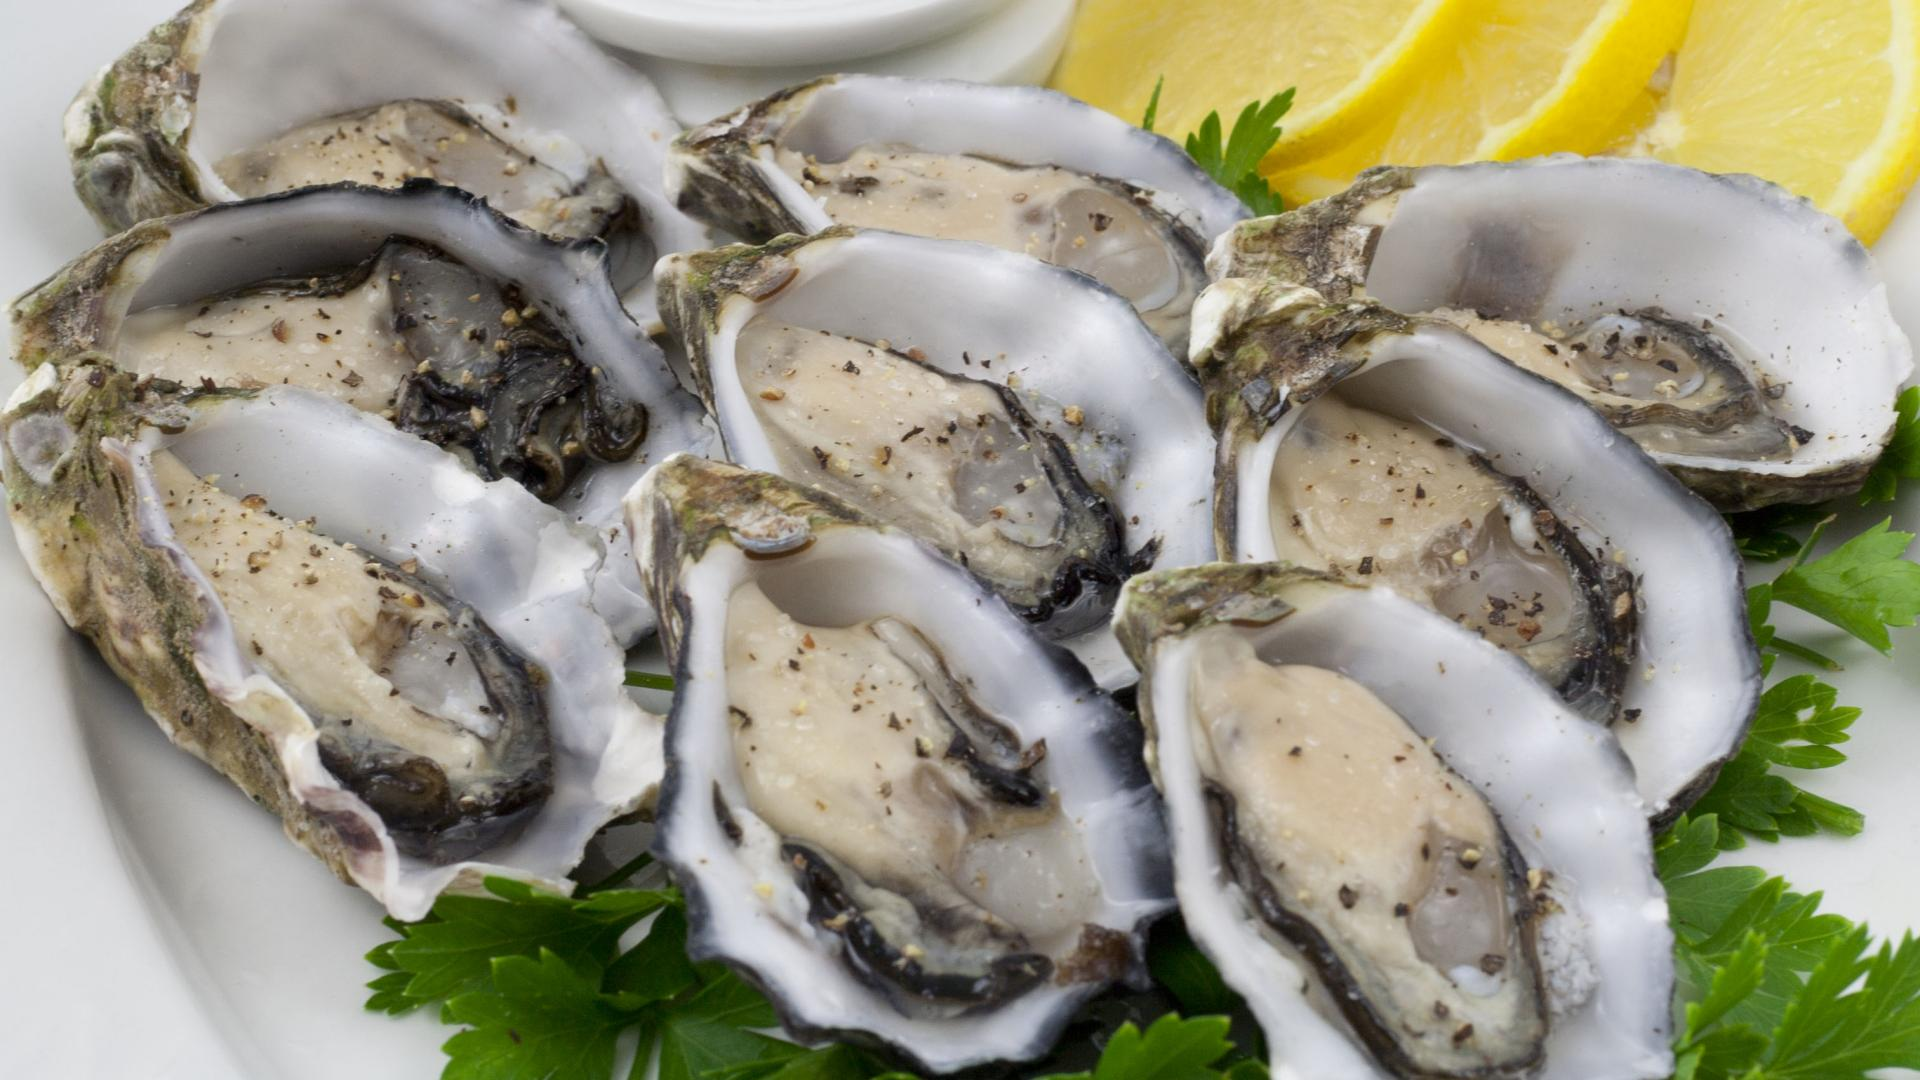 The Oyster Superfoods: Foods to increase testosterone #1